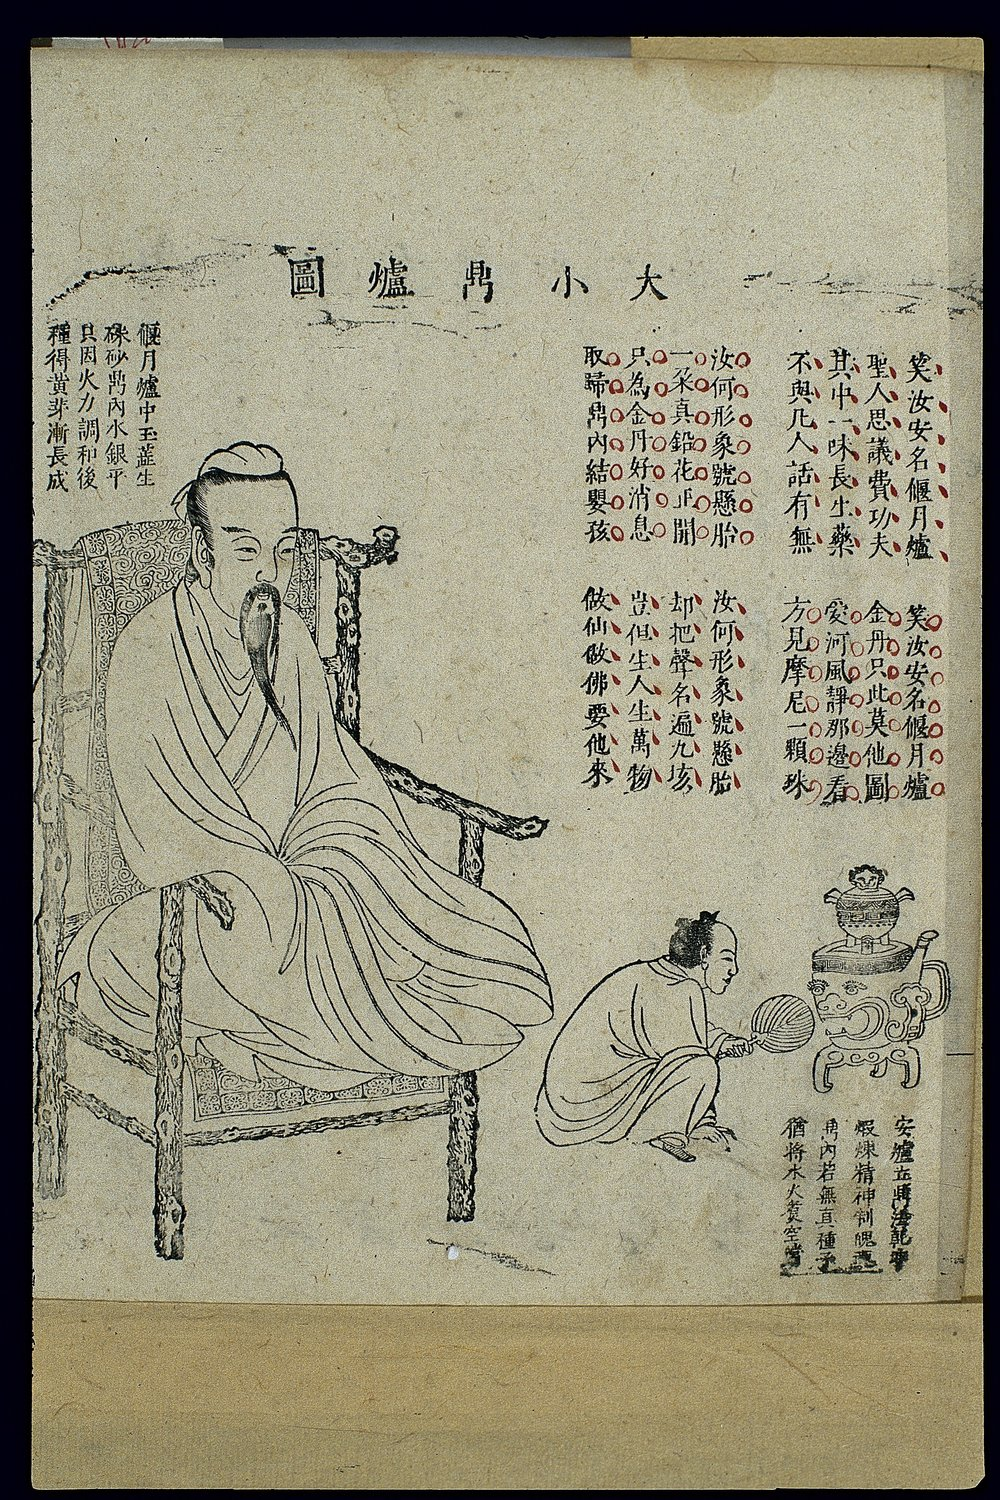 Chinese woodcut: Daoist internal alchemy. 1615 AD. Credit: Wellcome Library, London. Wellcome Images